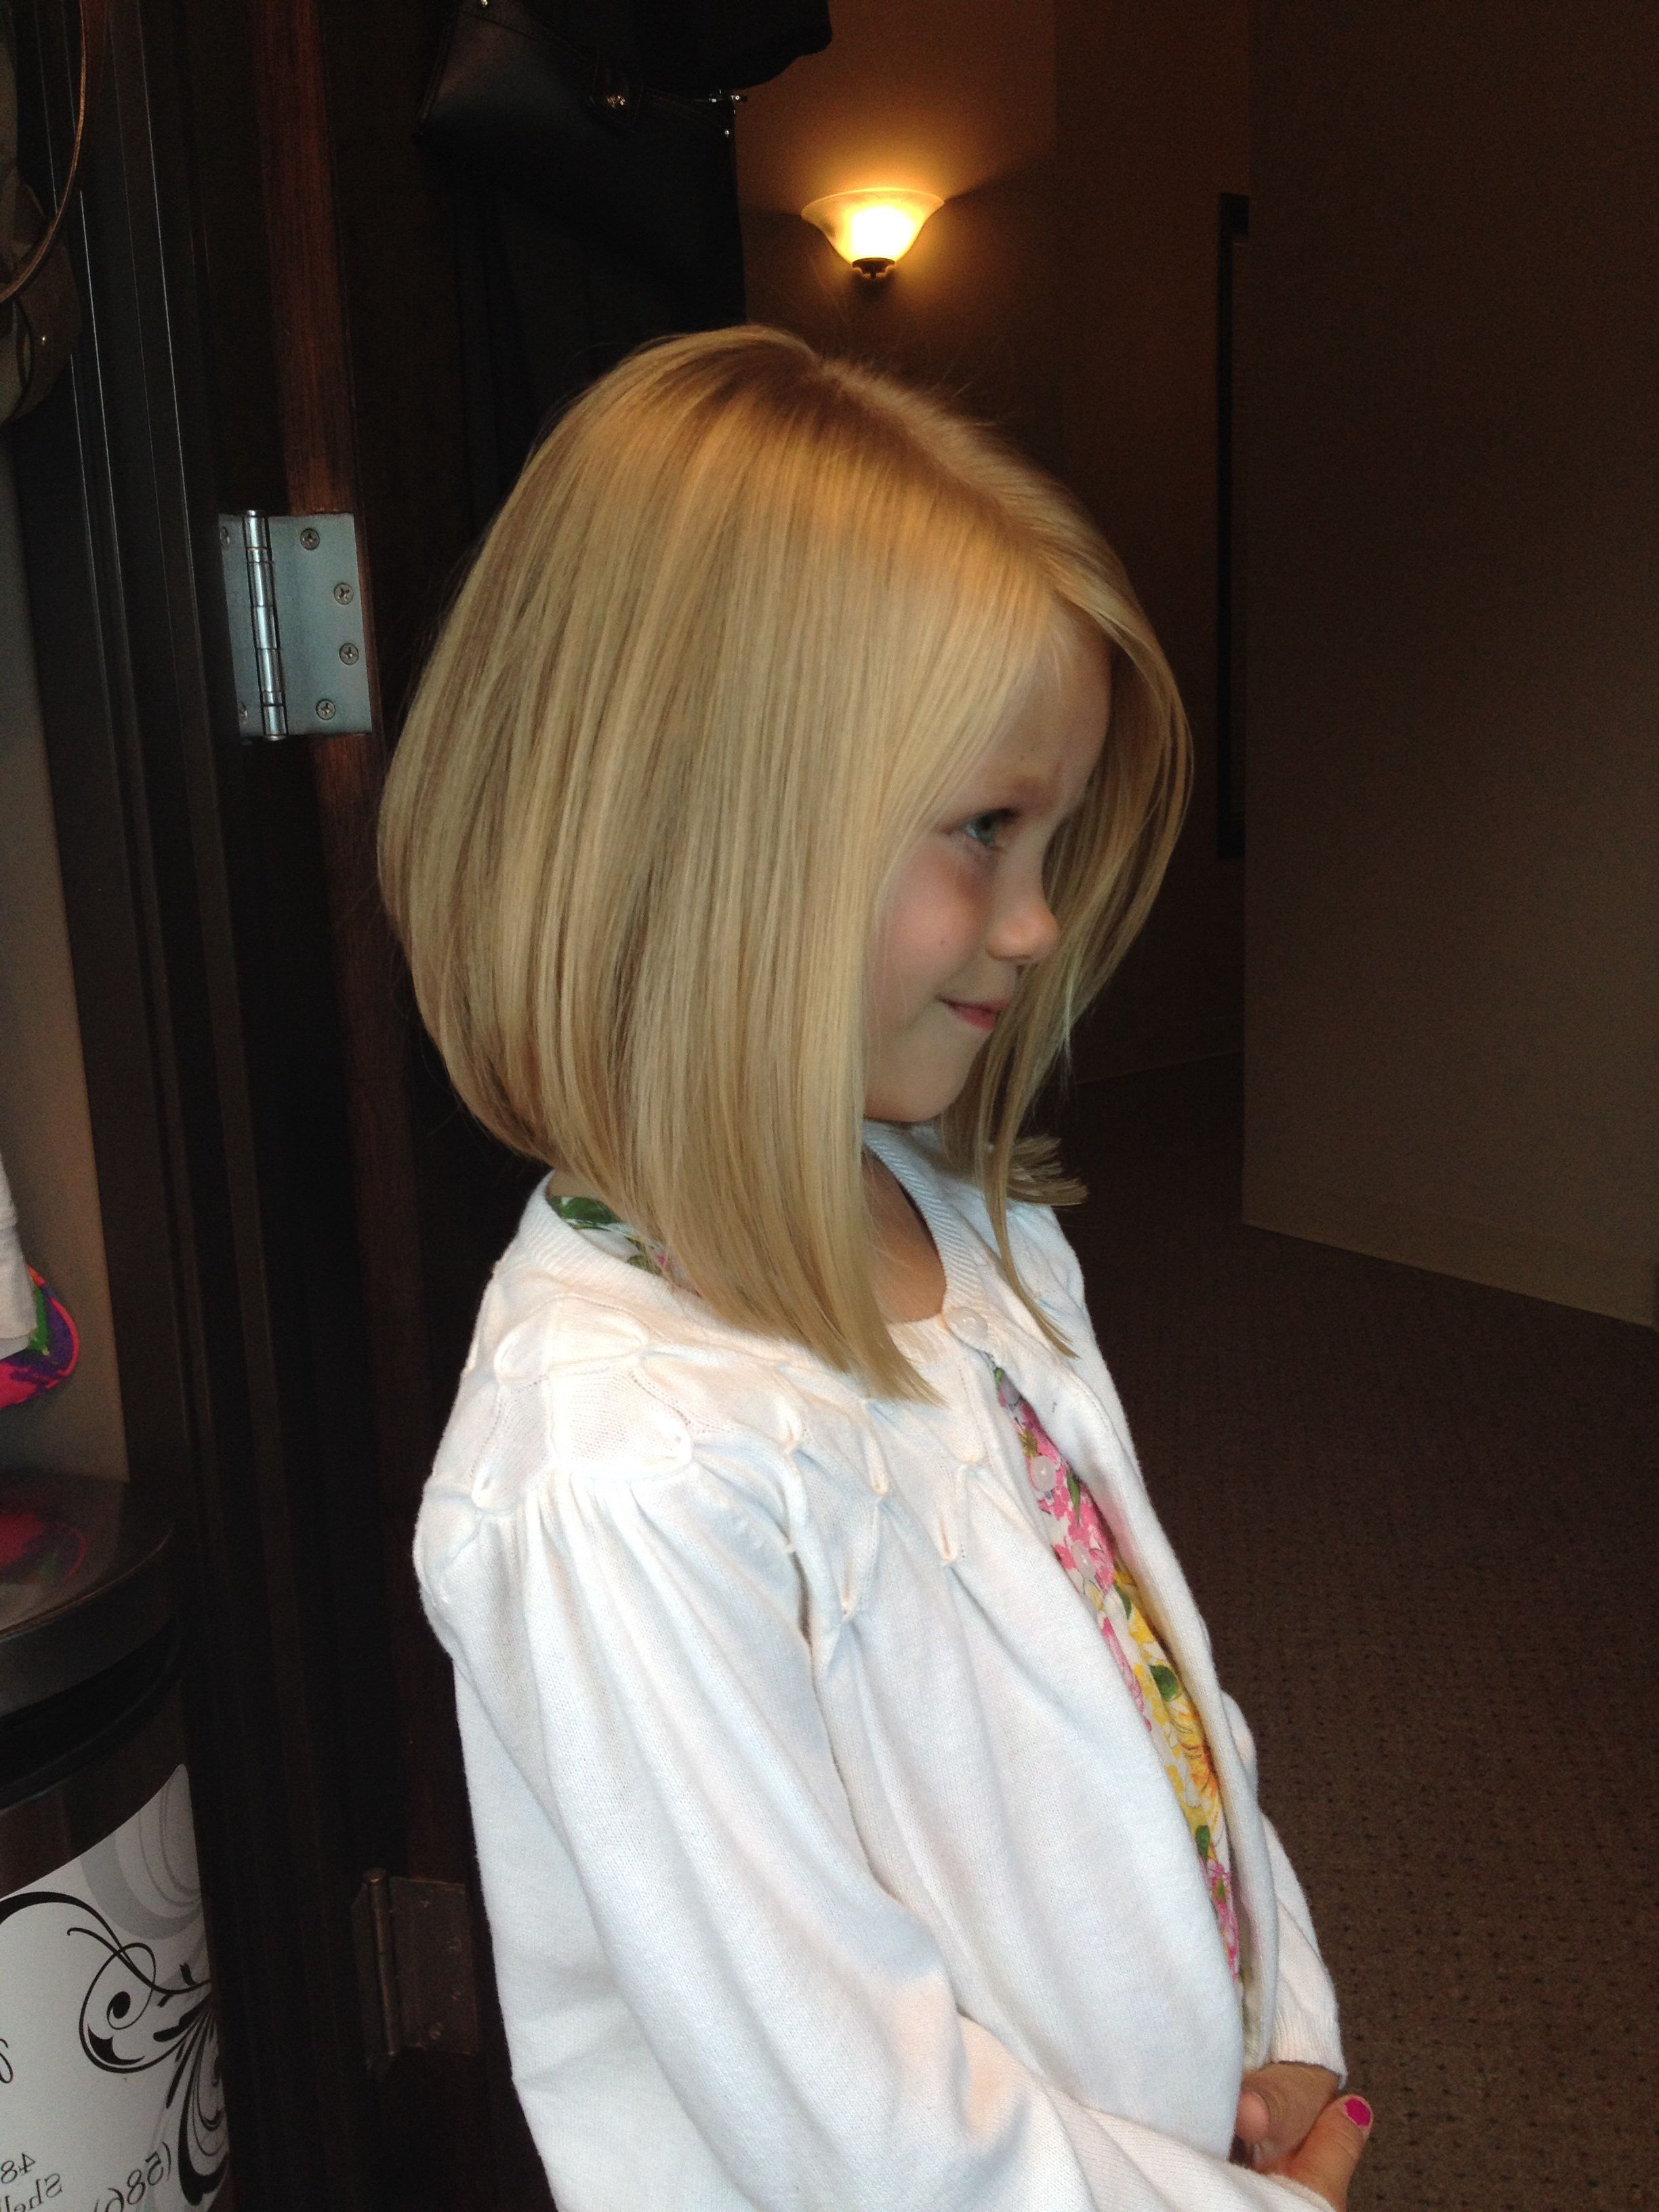 25 Belles Coupes Pour Petites Filles | Hairstyles | Pinterest | Girl Throughout Young Girl Short Hairstyles (View 3 of 25)